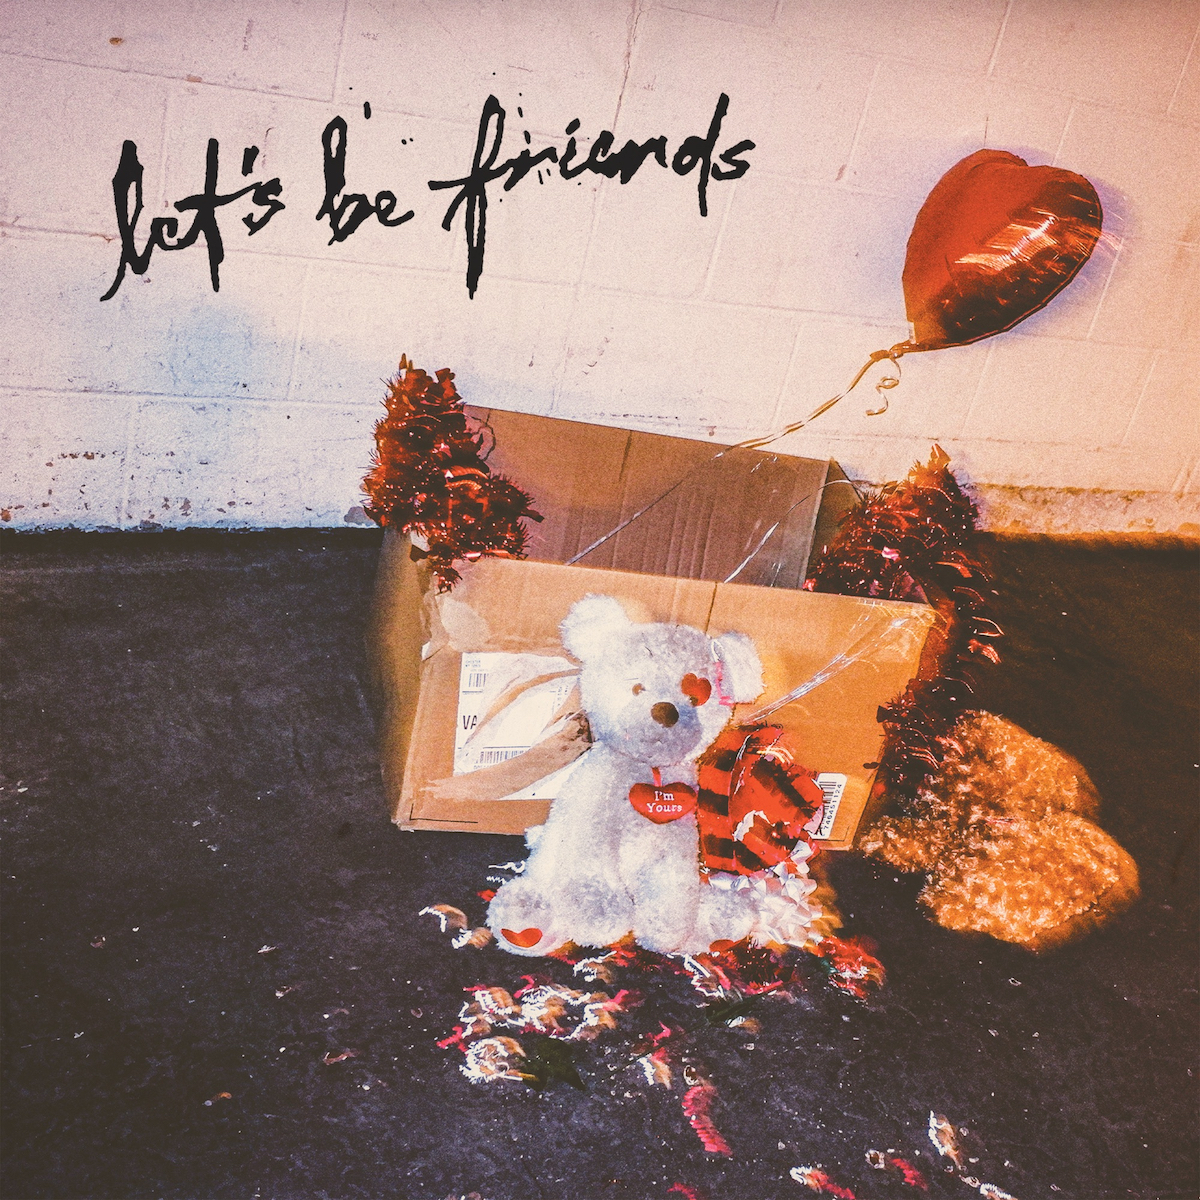 carly rae jepsen let's be friends single artwork